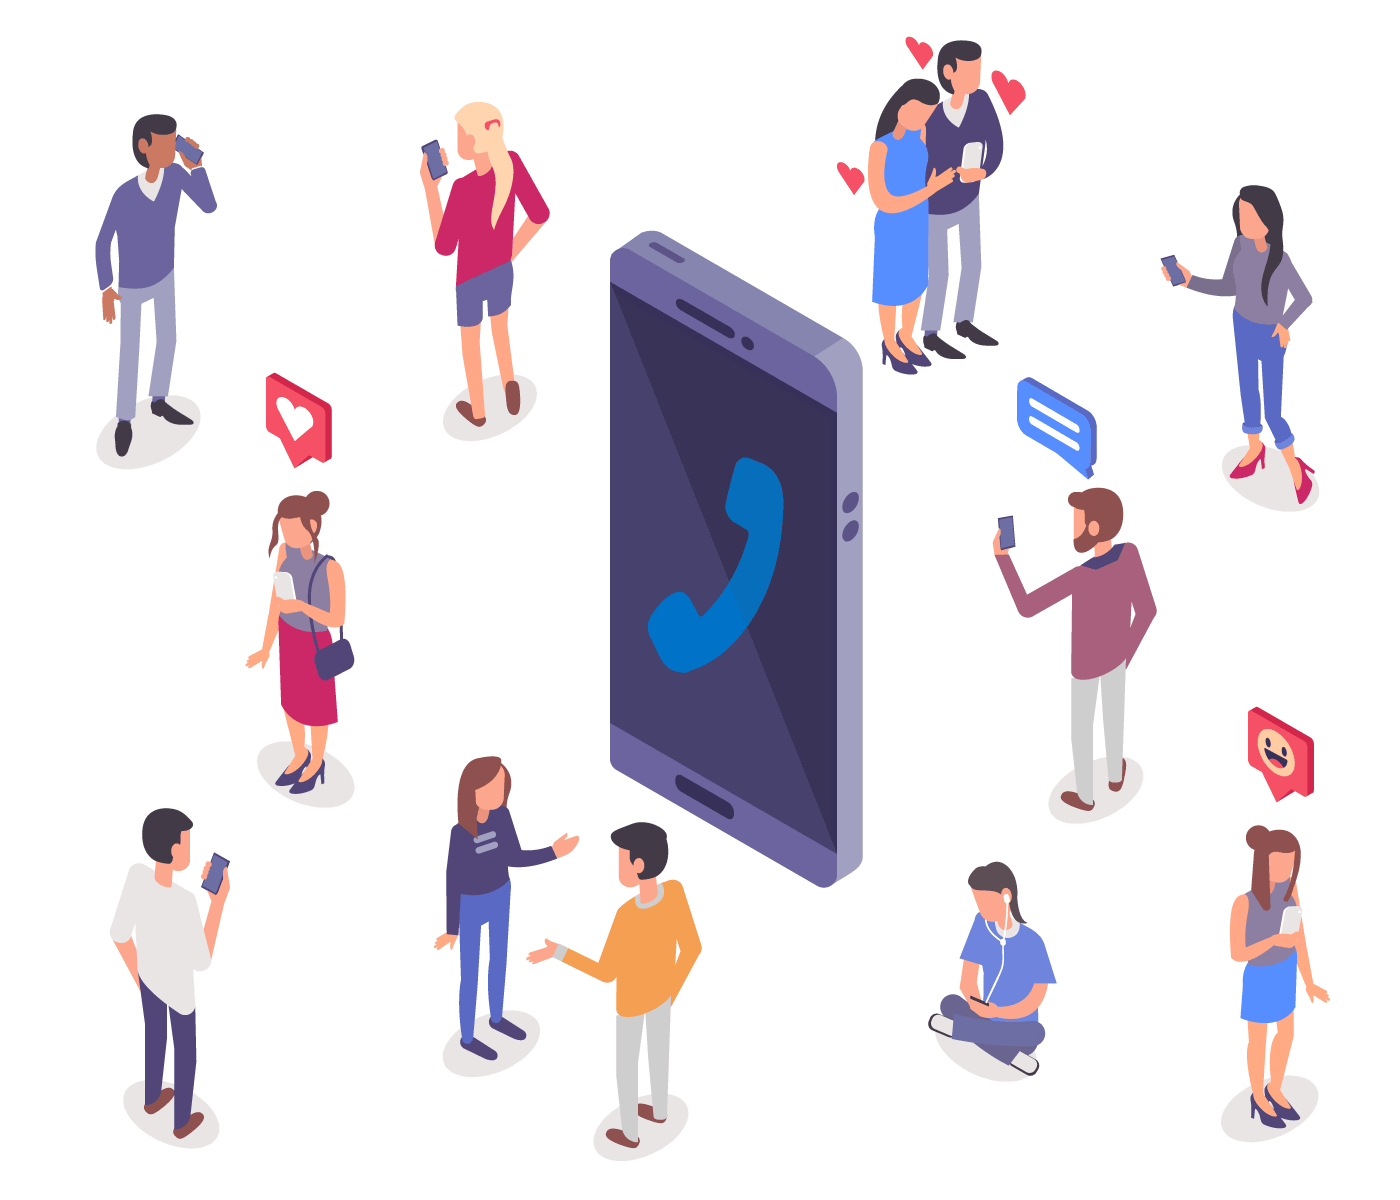 Free WiFi Calling and Texting App - Illustration of mobile phone in middle with Talkatone logo surrounded by people making calls and texting activities